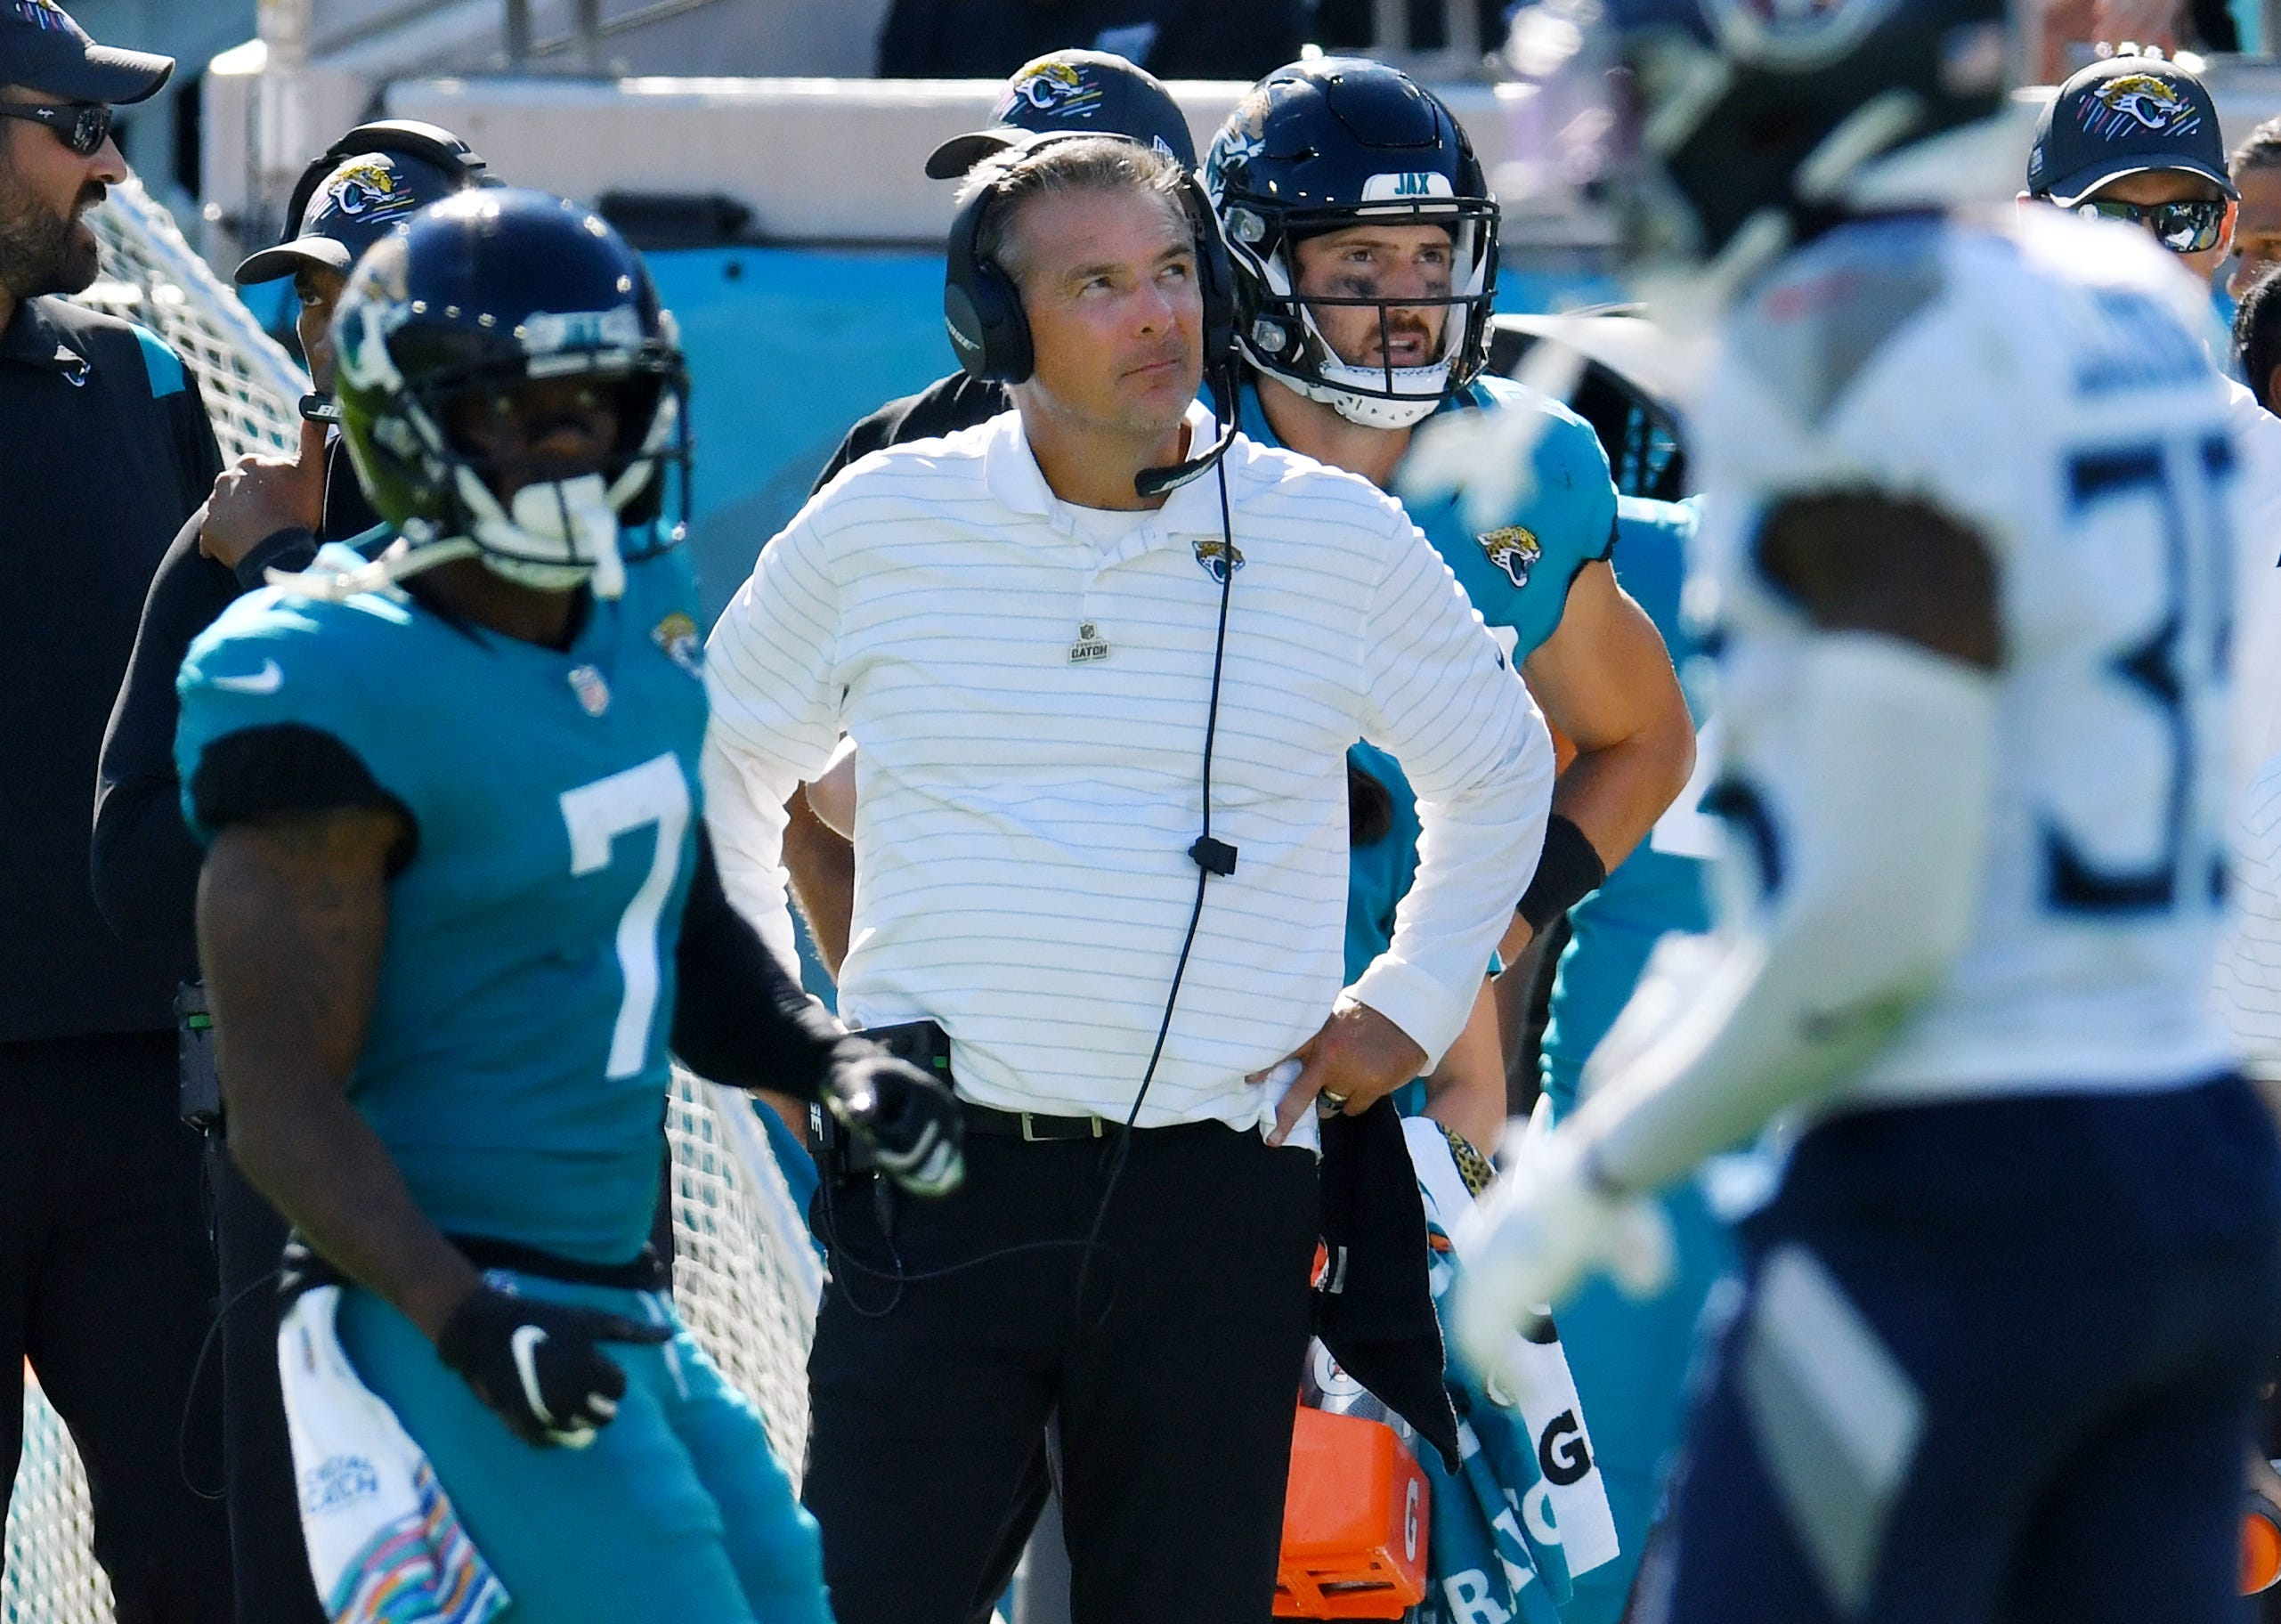 NFL Week 5 winners and losers: Urban Meyer showing Jaguars job is too big for him. Chargers trending up.